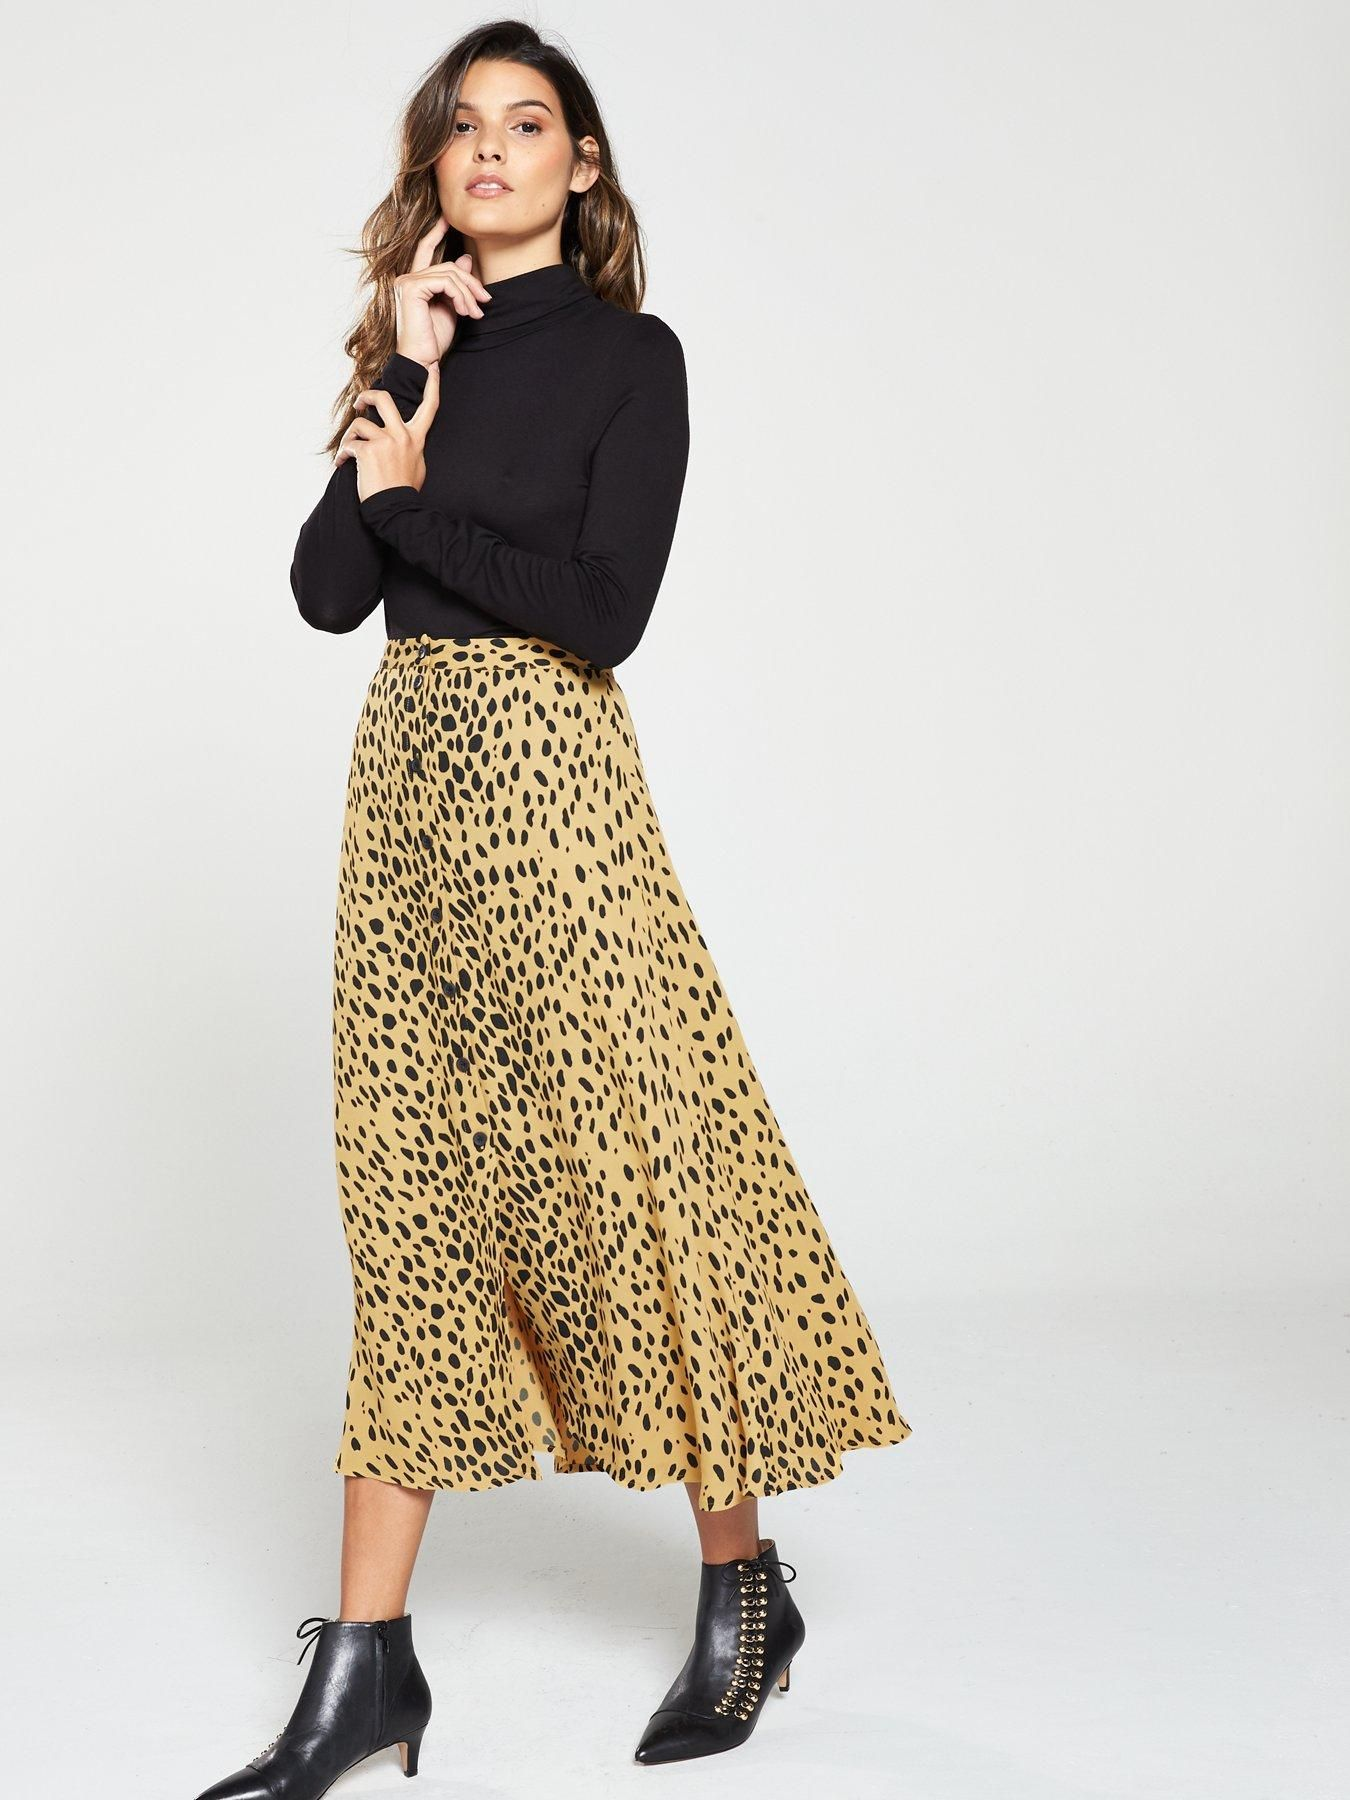 b141c47cdfba Animal Print Midi Skirt - Cream in 2019 | Style | Midi skirt, Skirts ...